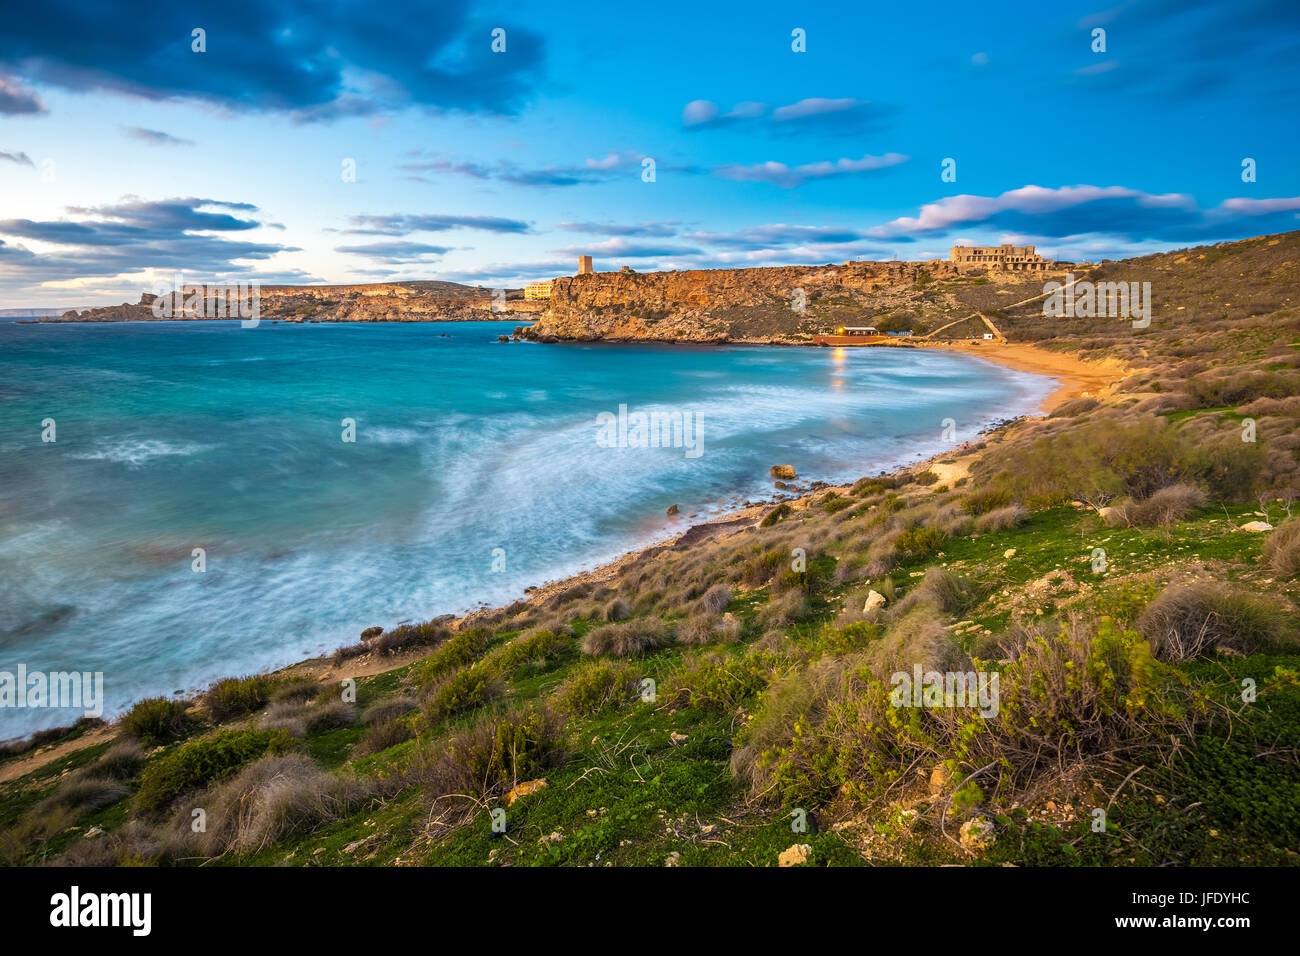 Mgarr, Malta - The famous Ghajn Tuffieha bay at blue hour on a long exposure shot with beautiful sky and clouds - Stock Image